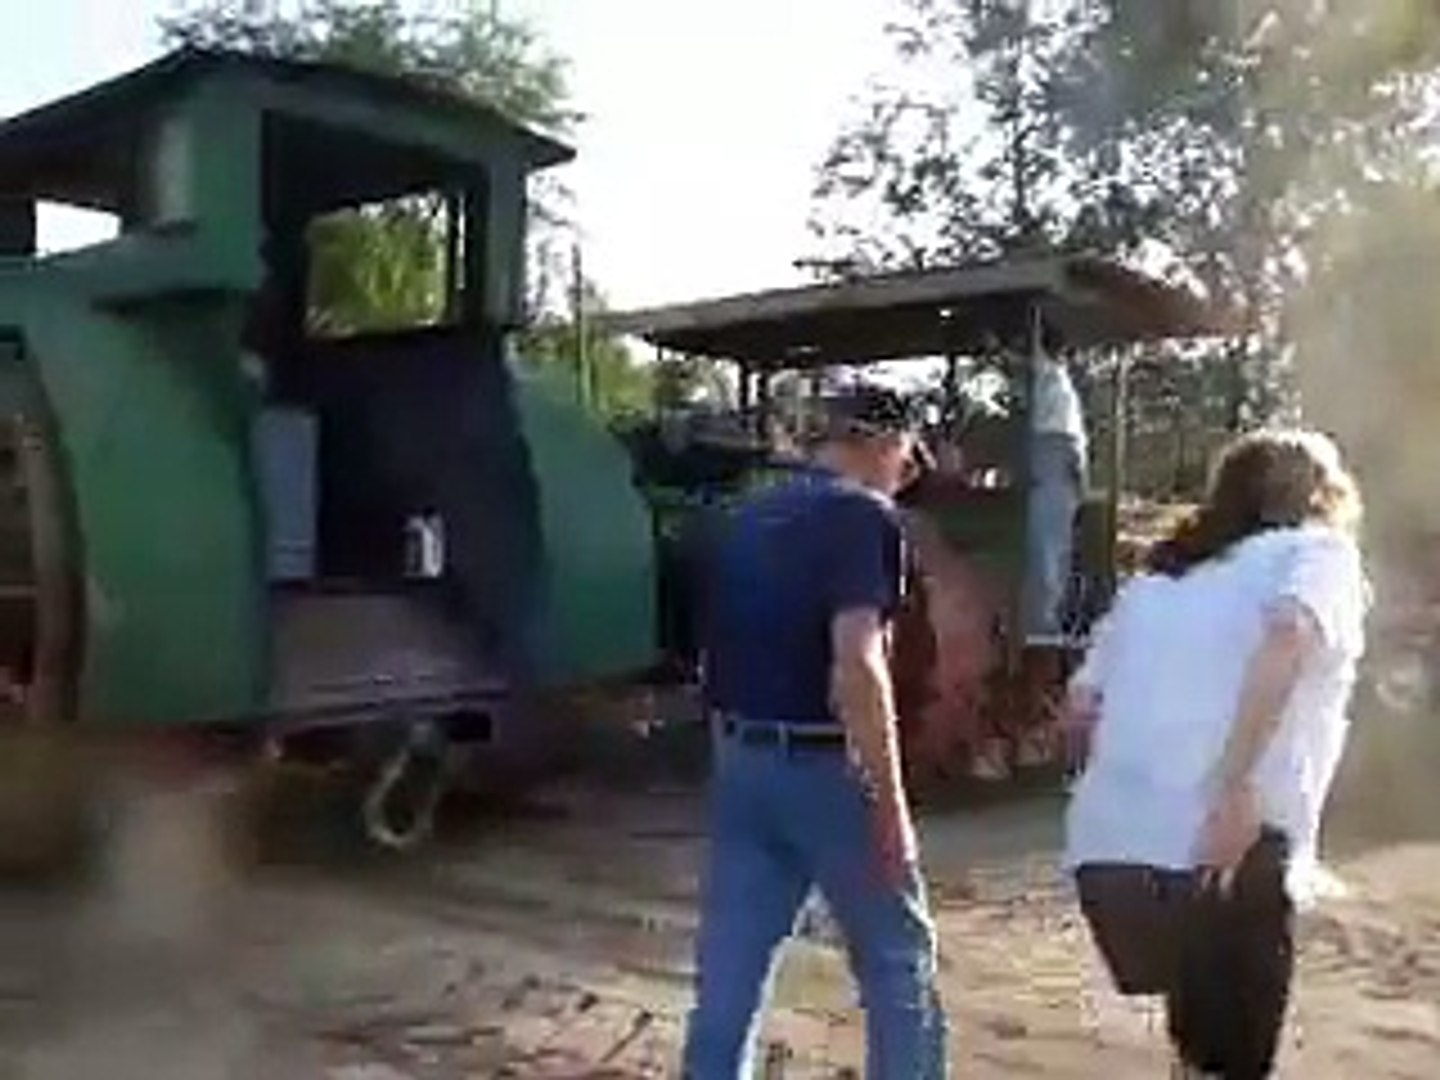 Giant Tractor Farm Motor Threshing Show Machine